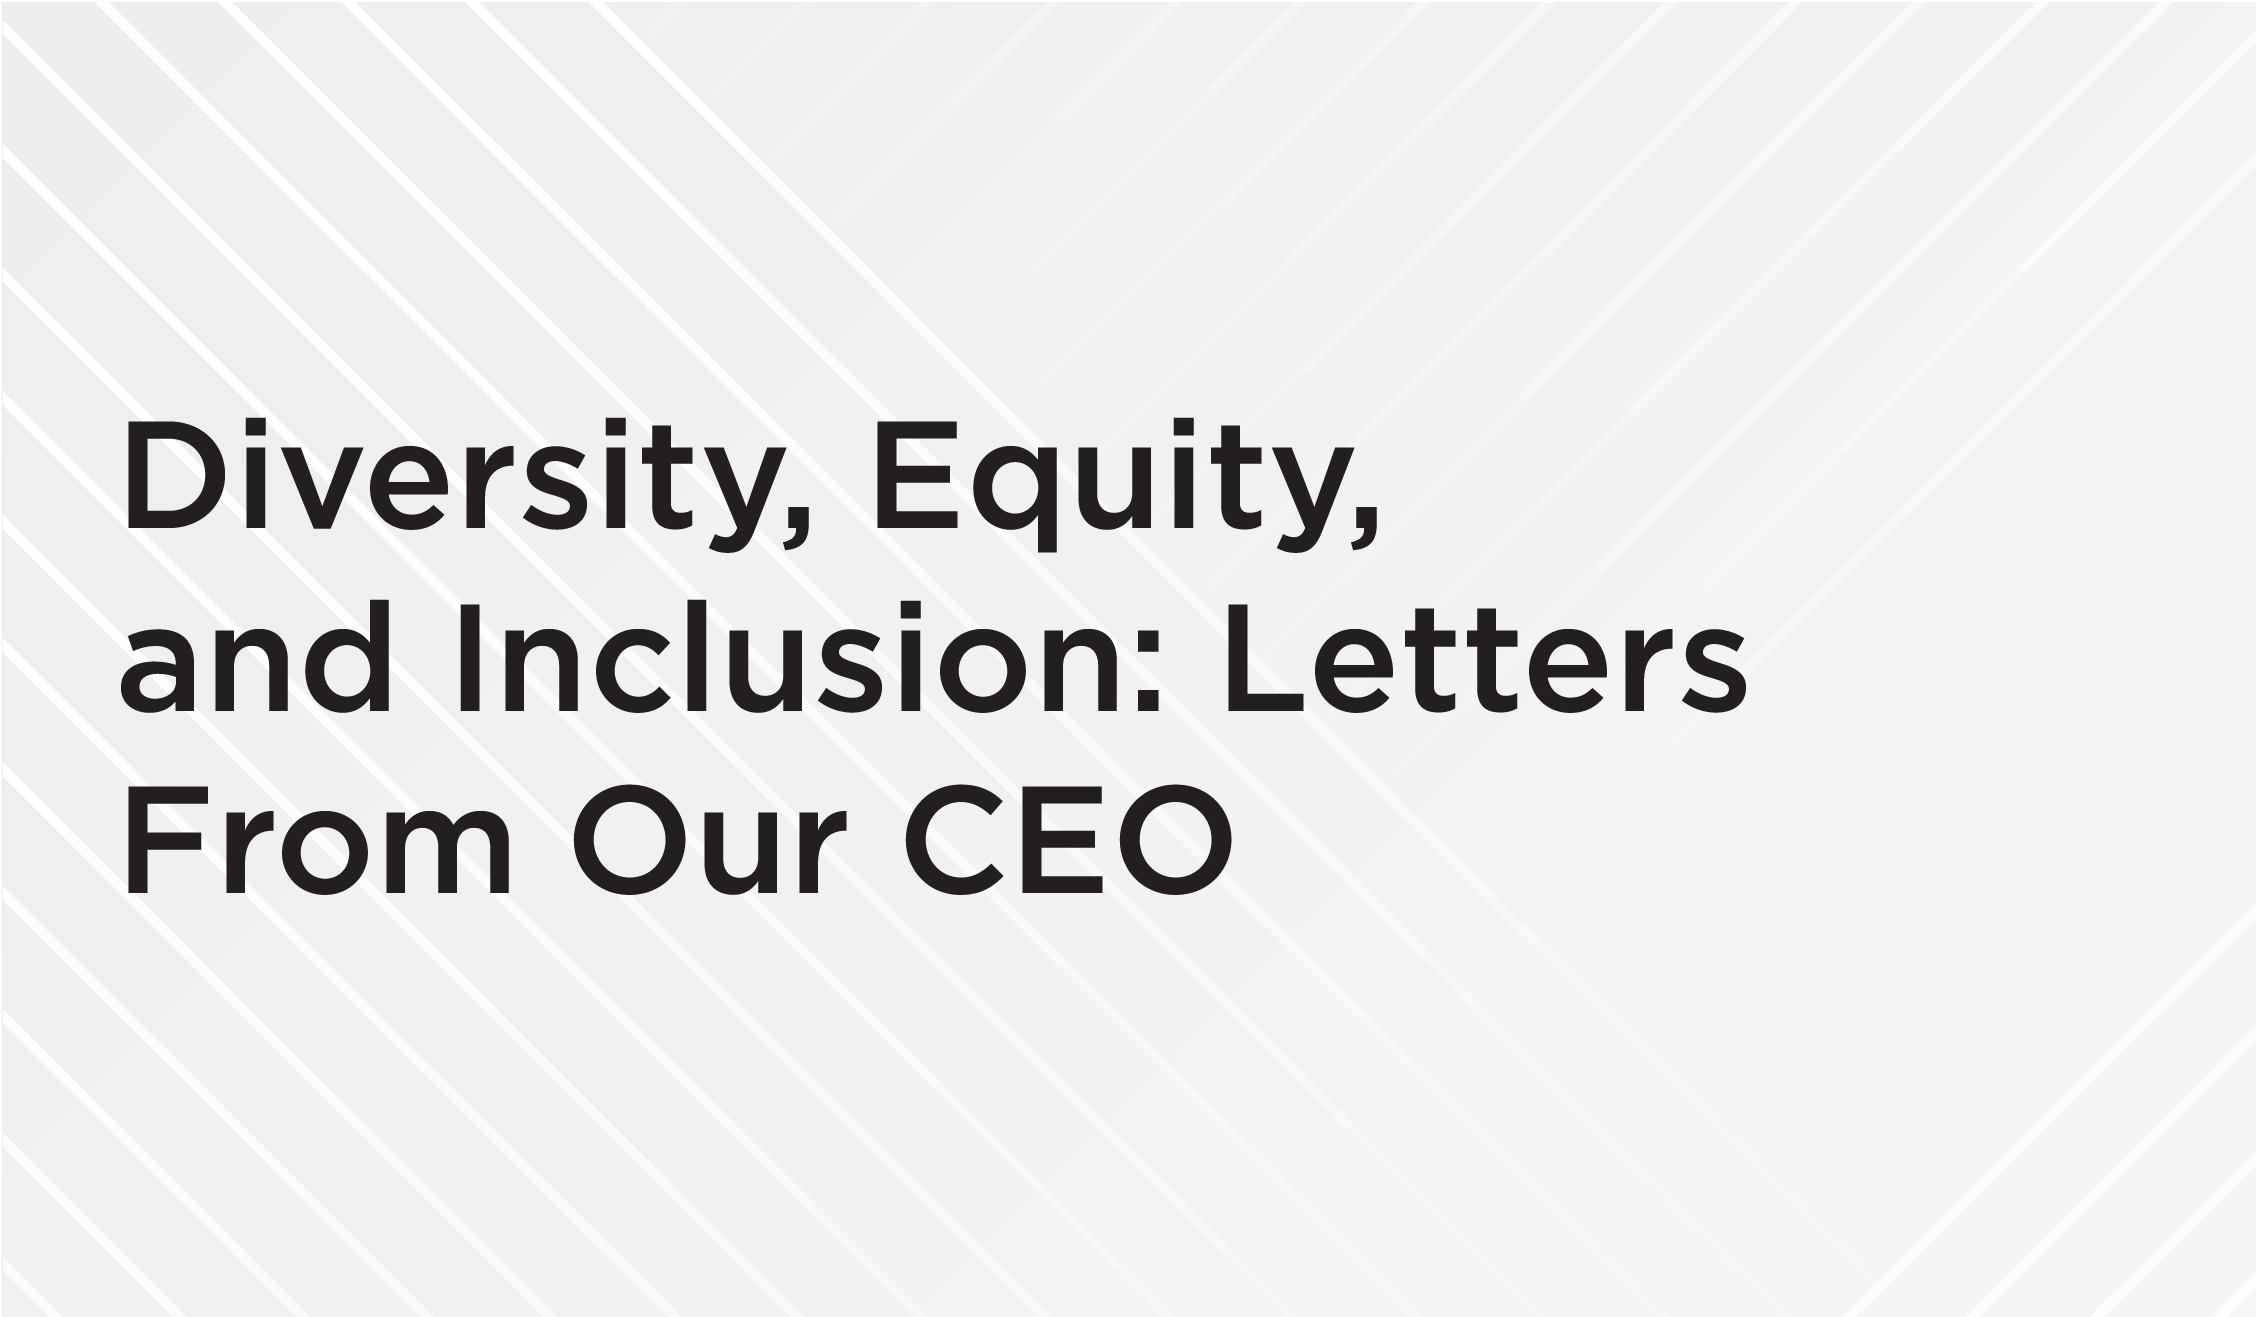 Diversity, Equity, and Inclusion: Letters From Our CEO